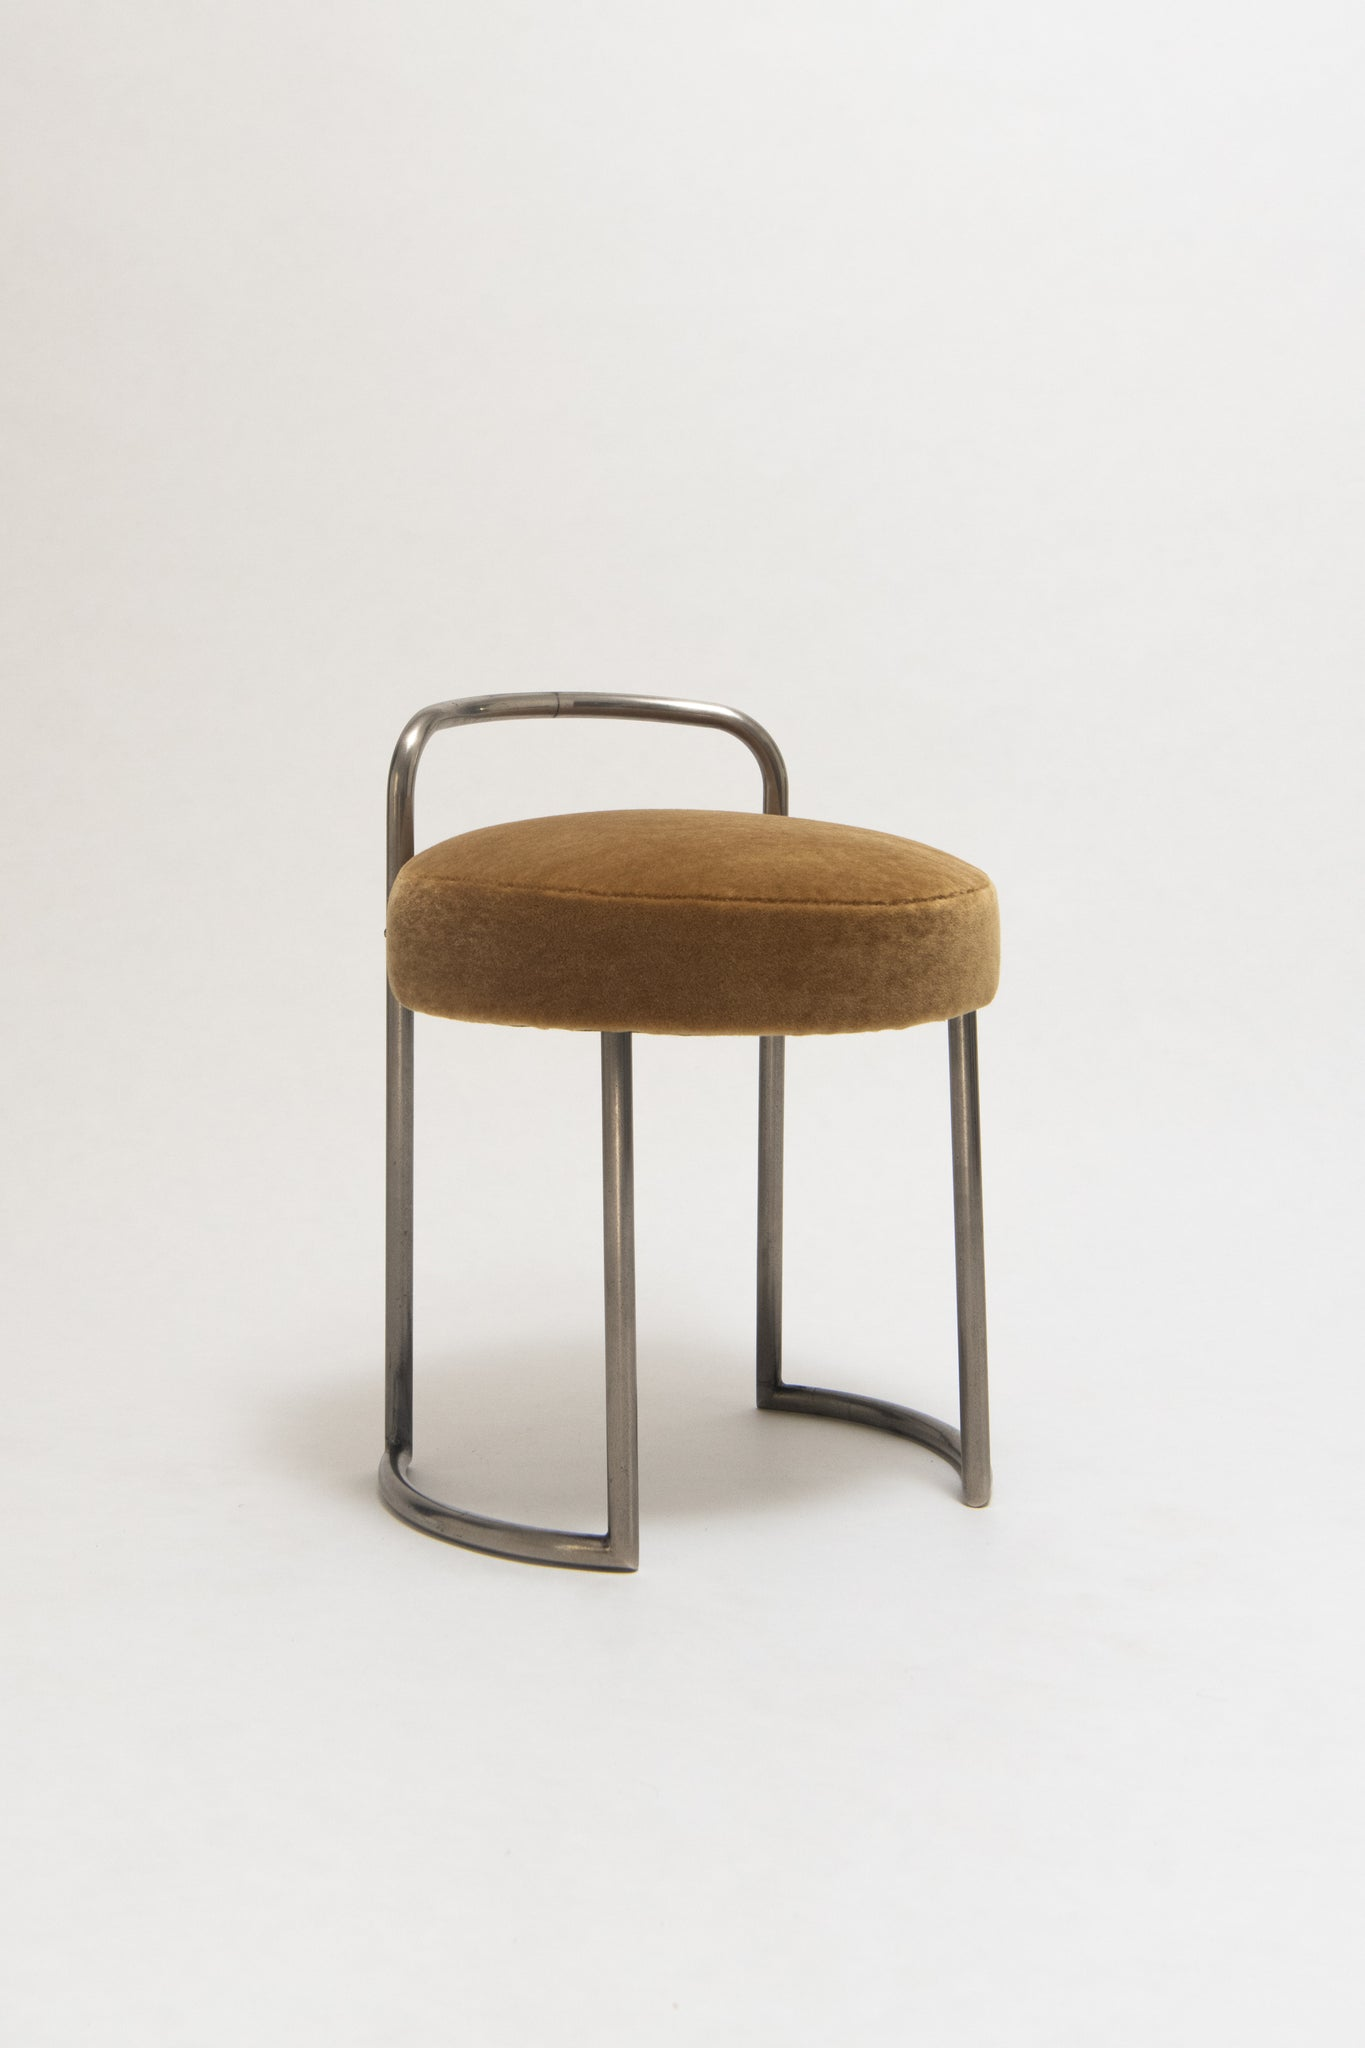 LOUIS SOGNOT, TUBULAR METAL STOOL, C. 1930